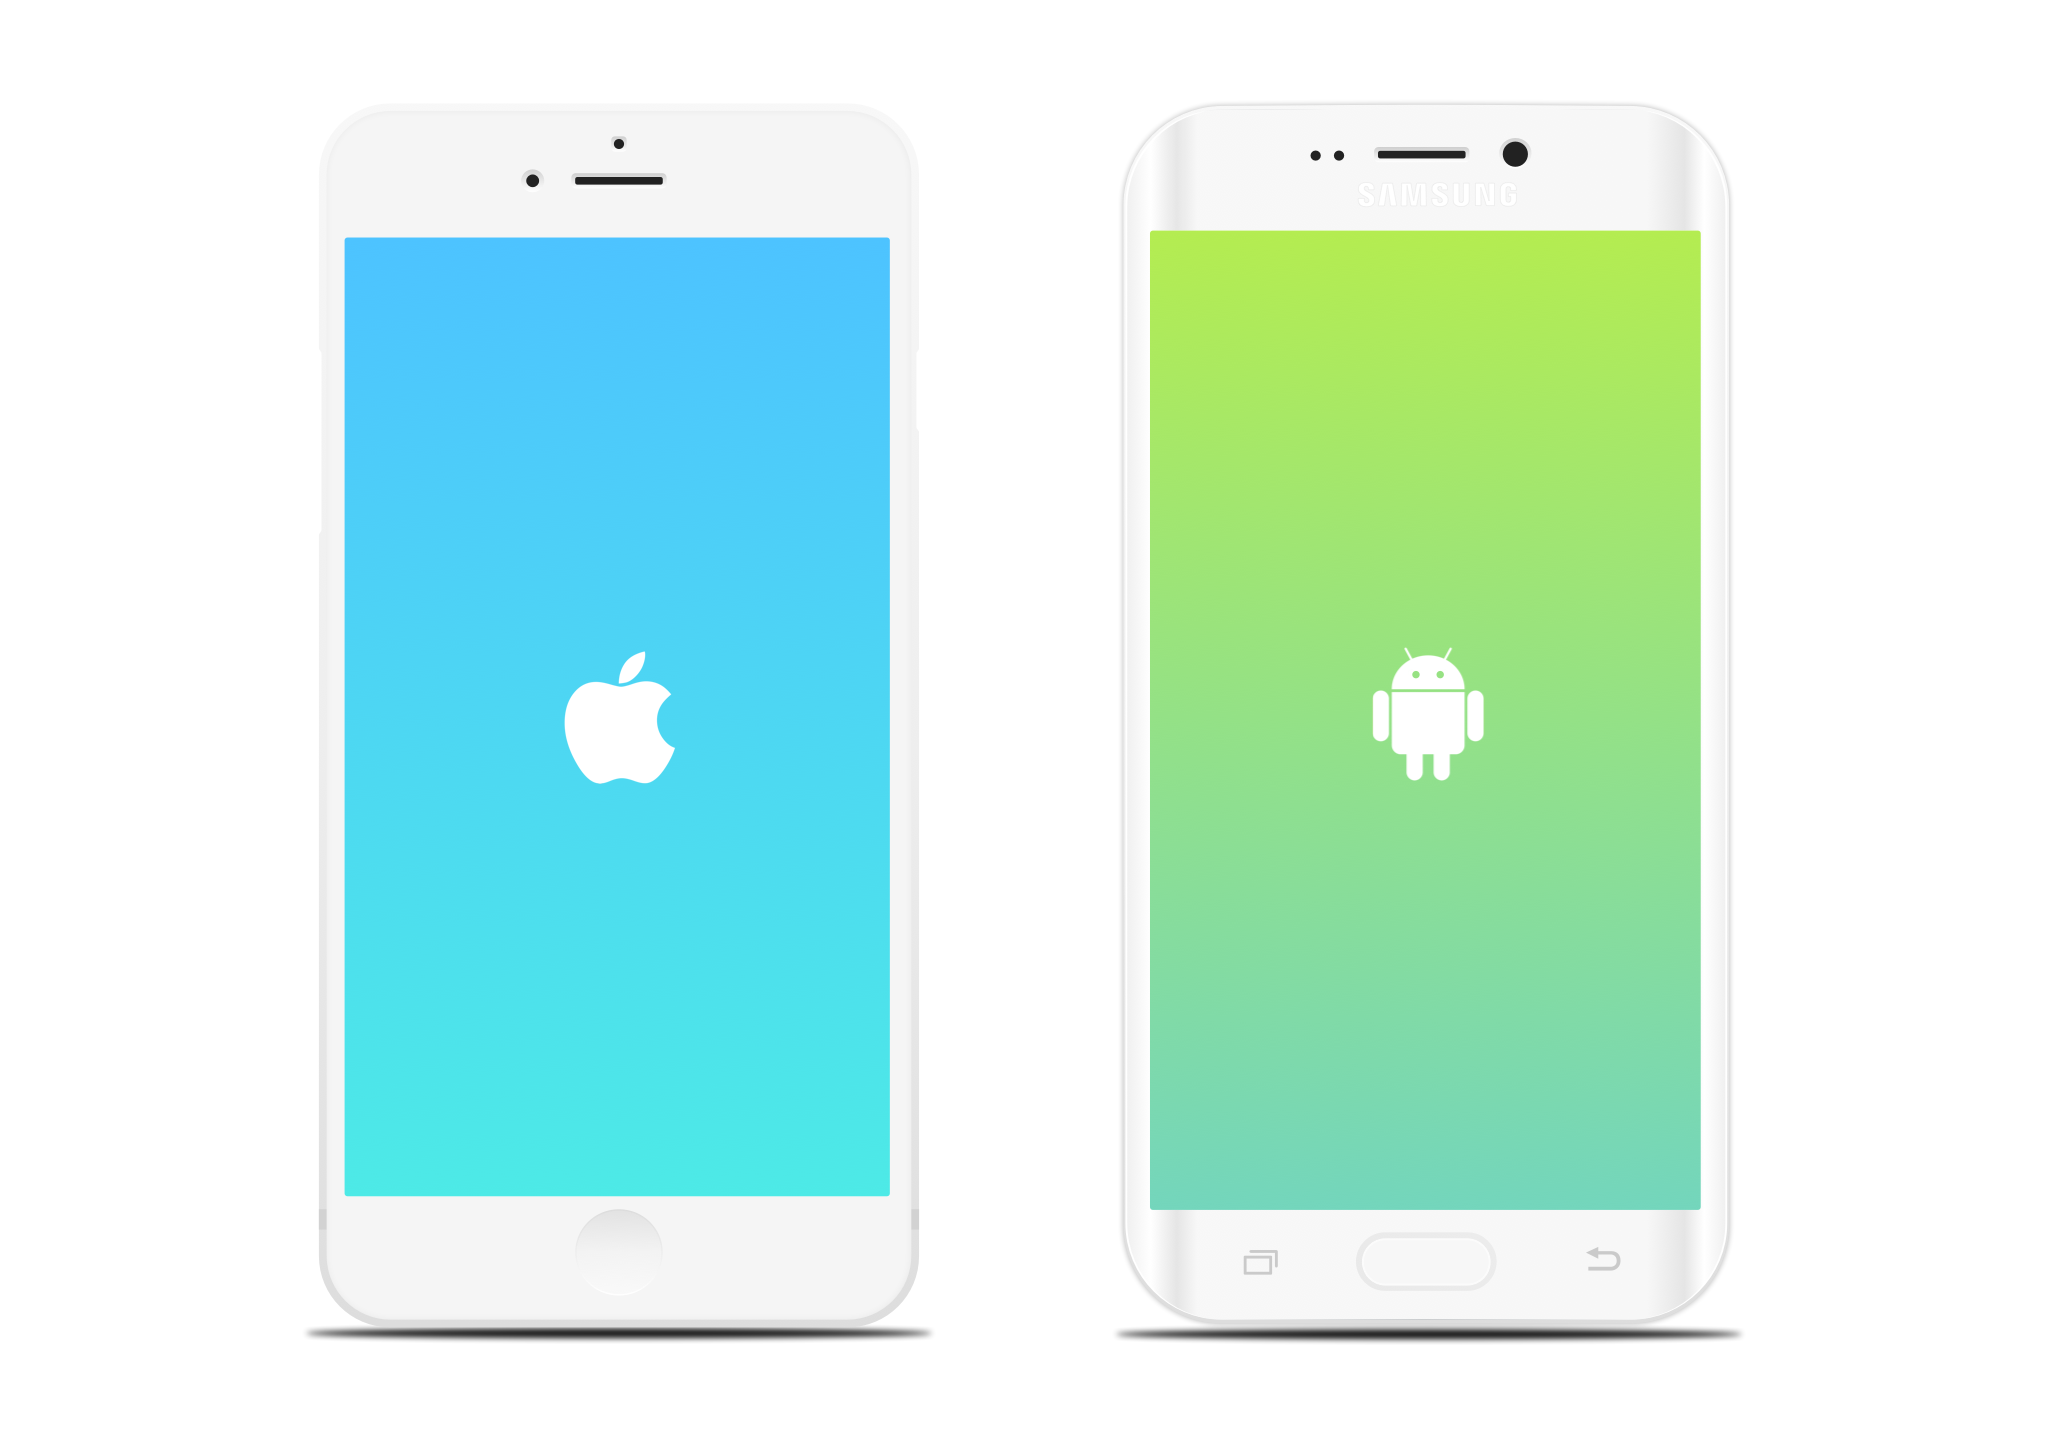 Rookie Guide : How To Convert iOS UI To Android - The